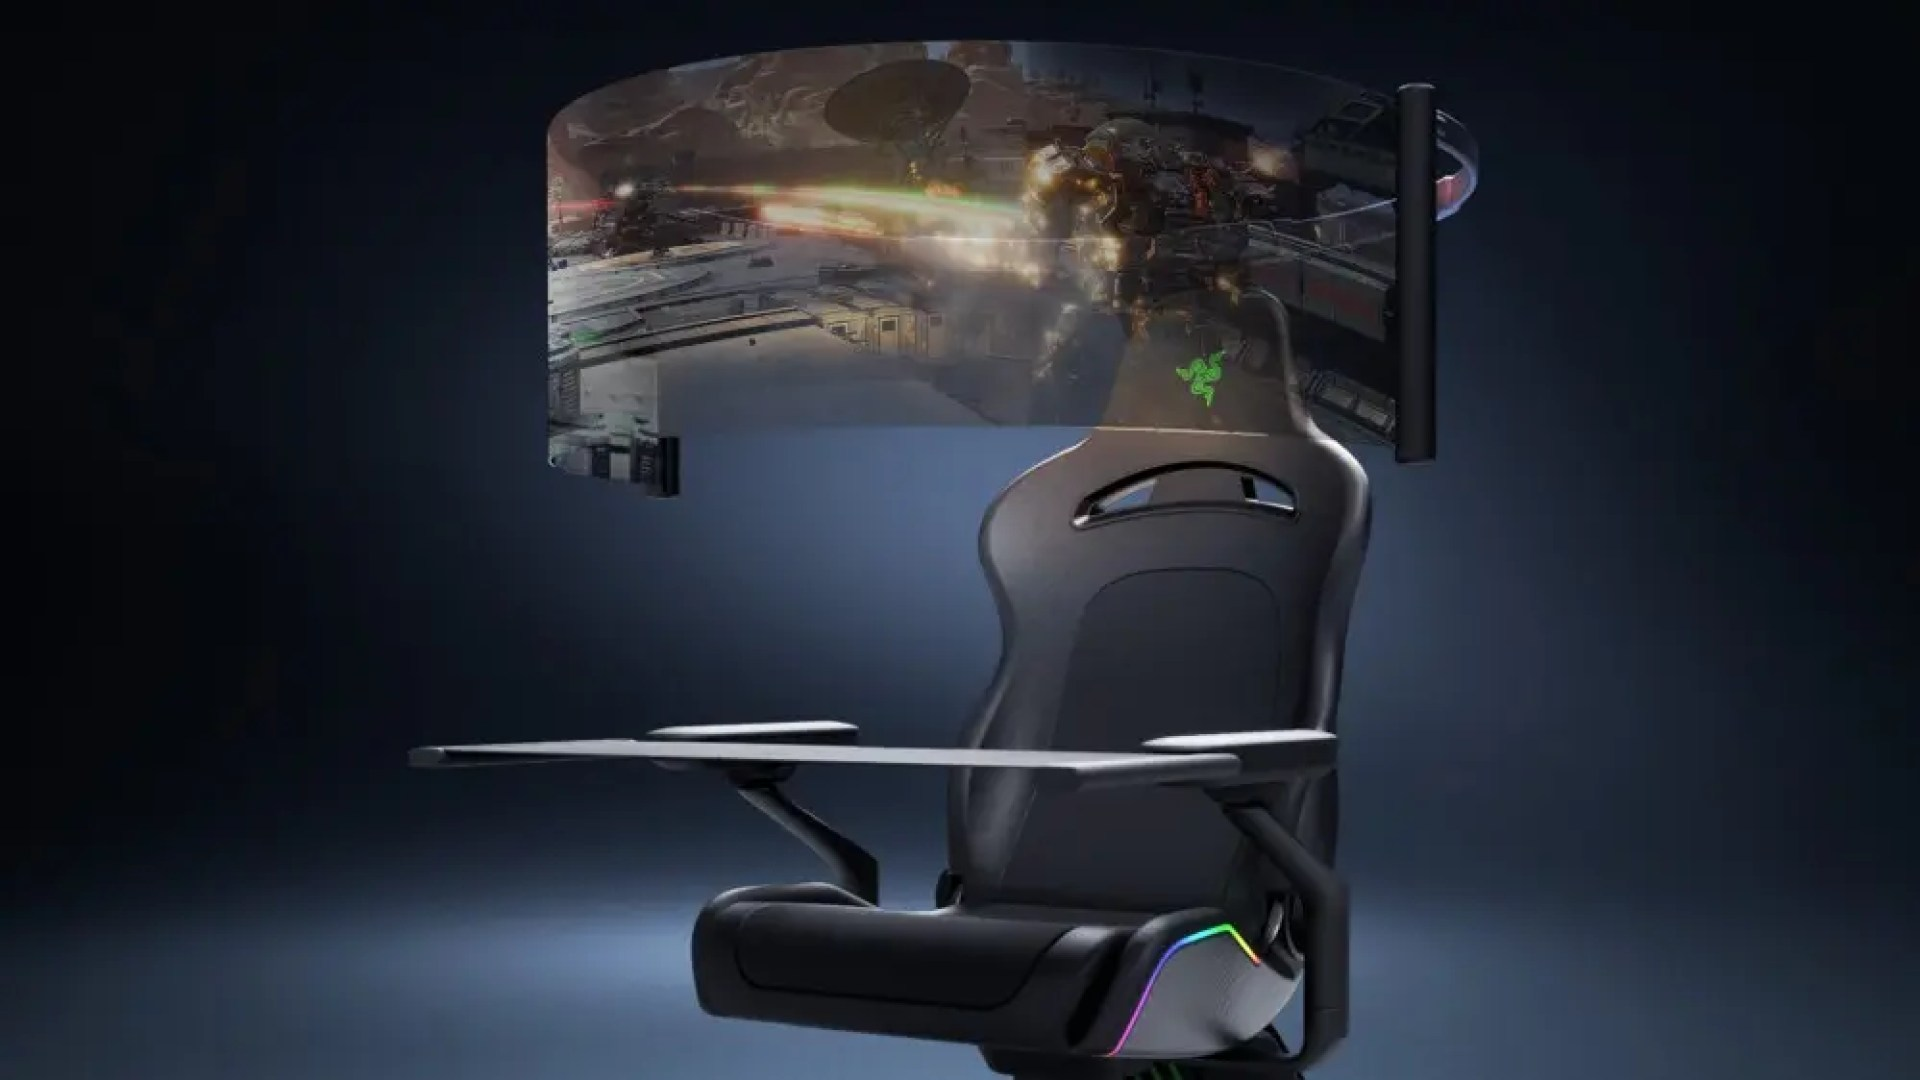 Project Brooklyn gaming chair and OLED screen.